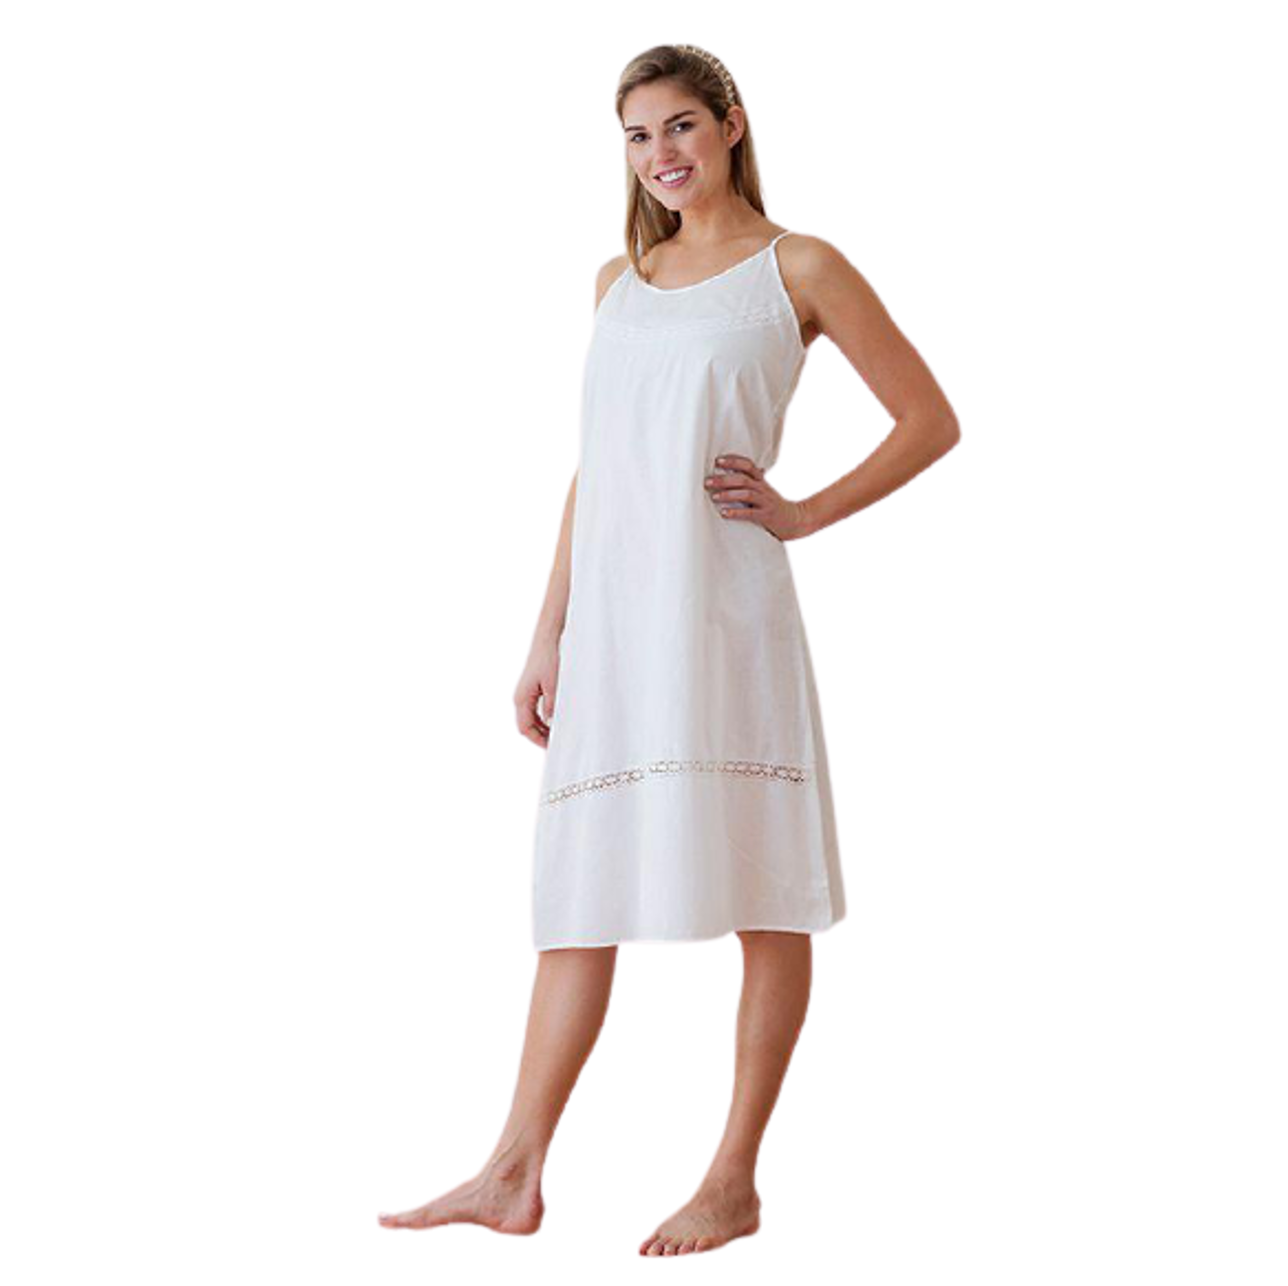 White Cotton Nightgown